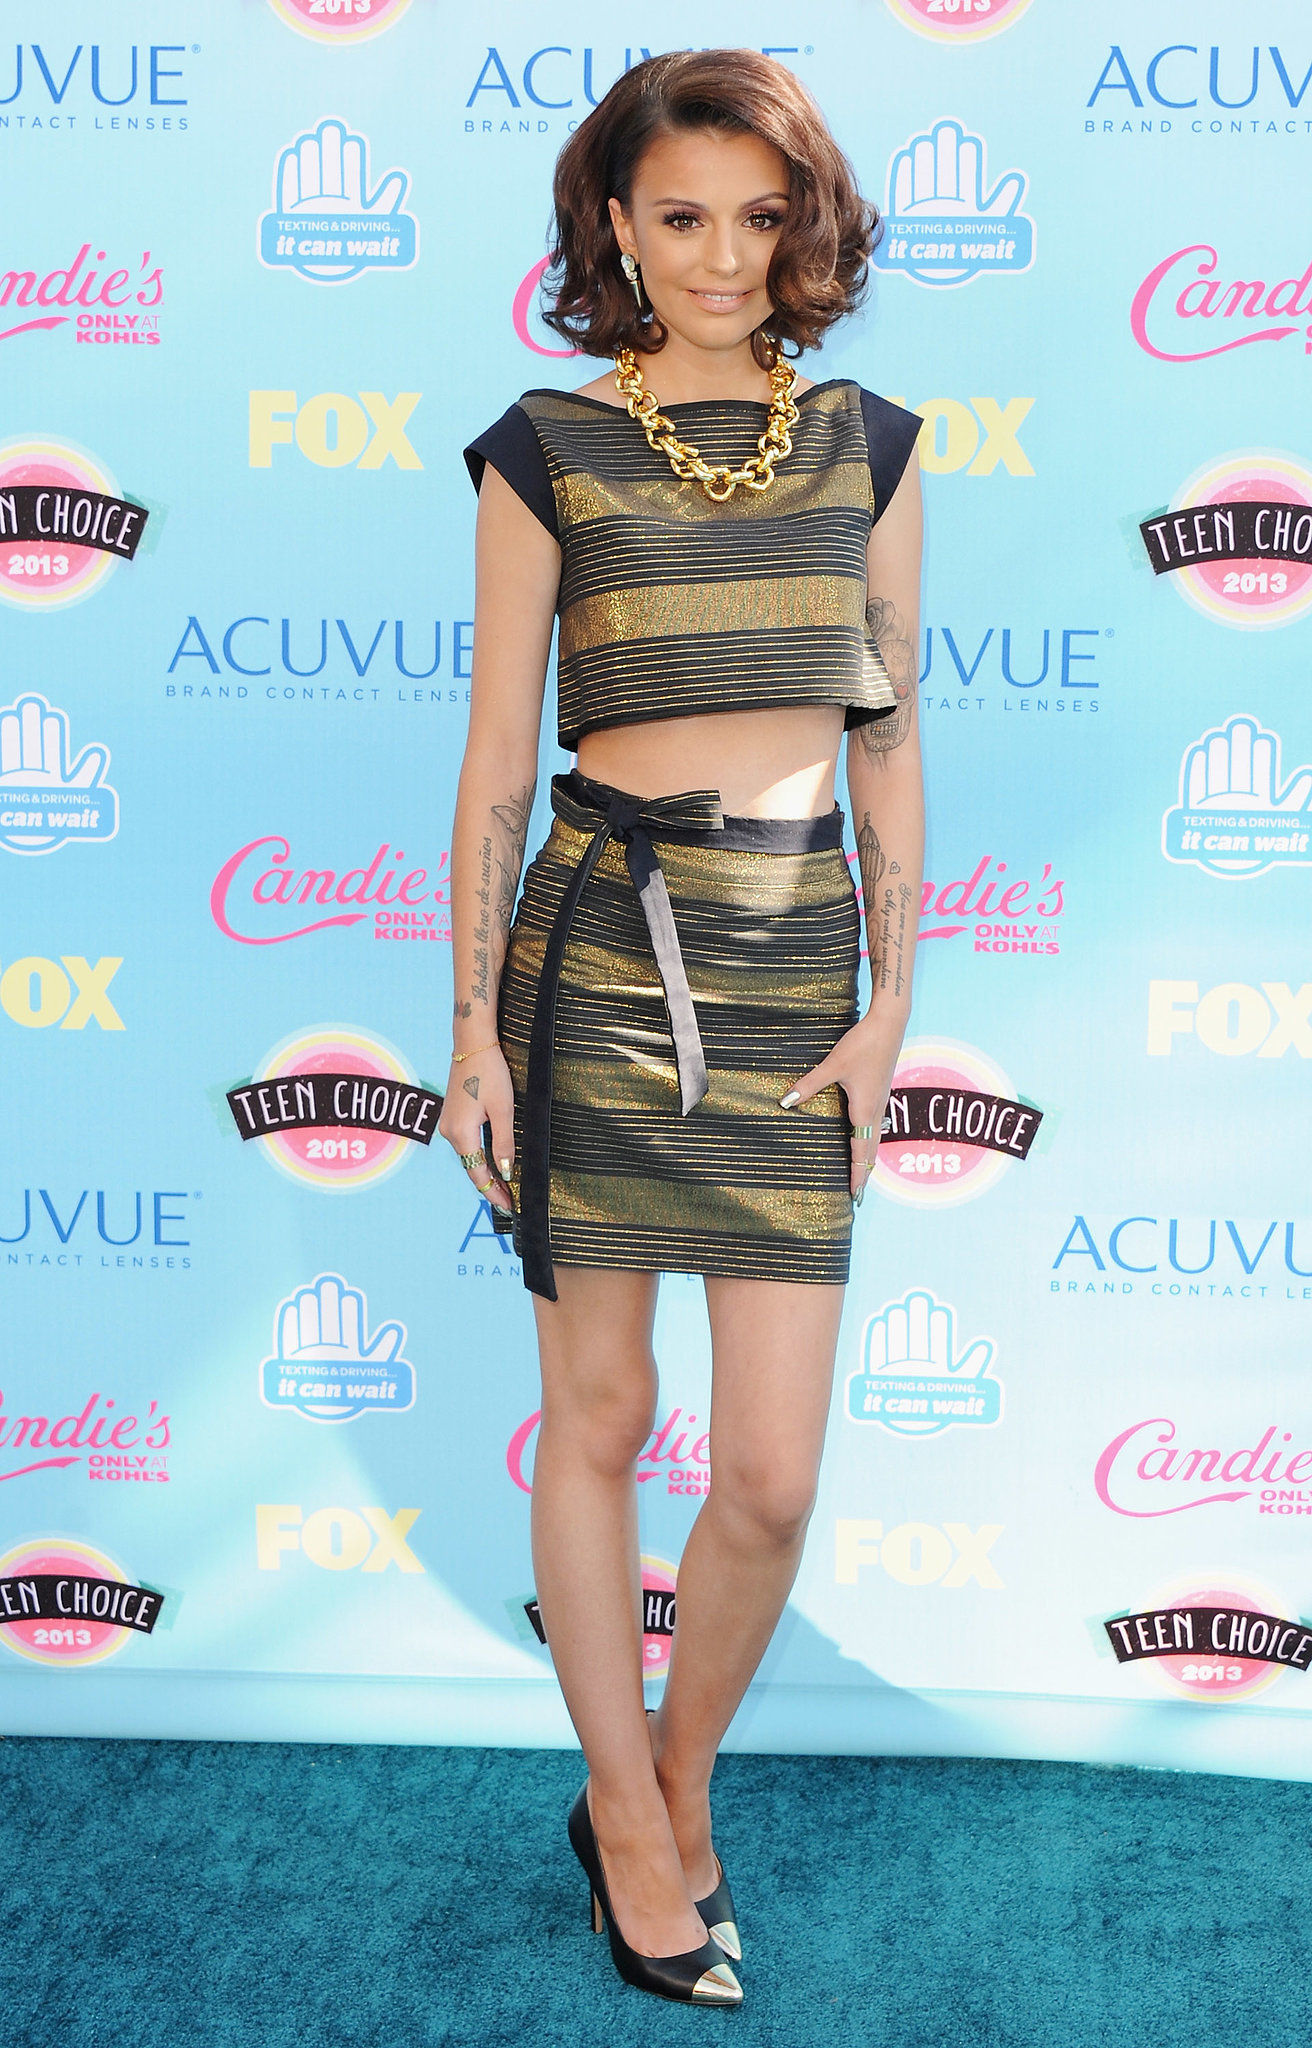 Cher Lloyd caught our eye in one of the evening's top trends — midriff-baring separates —in a look by The Hellers.